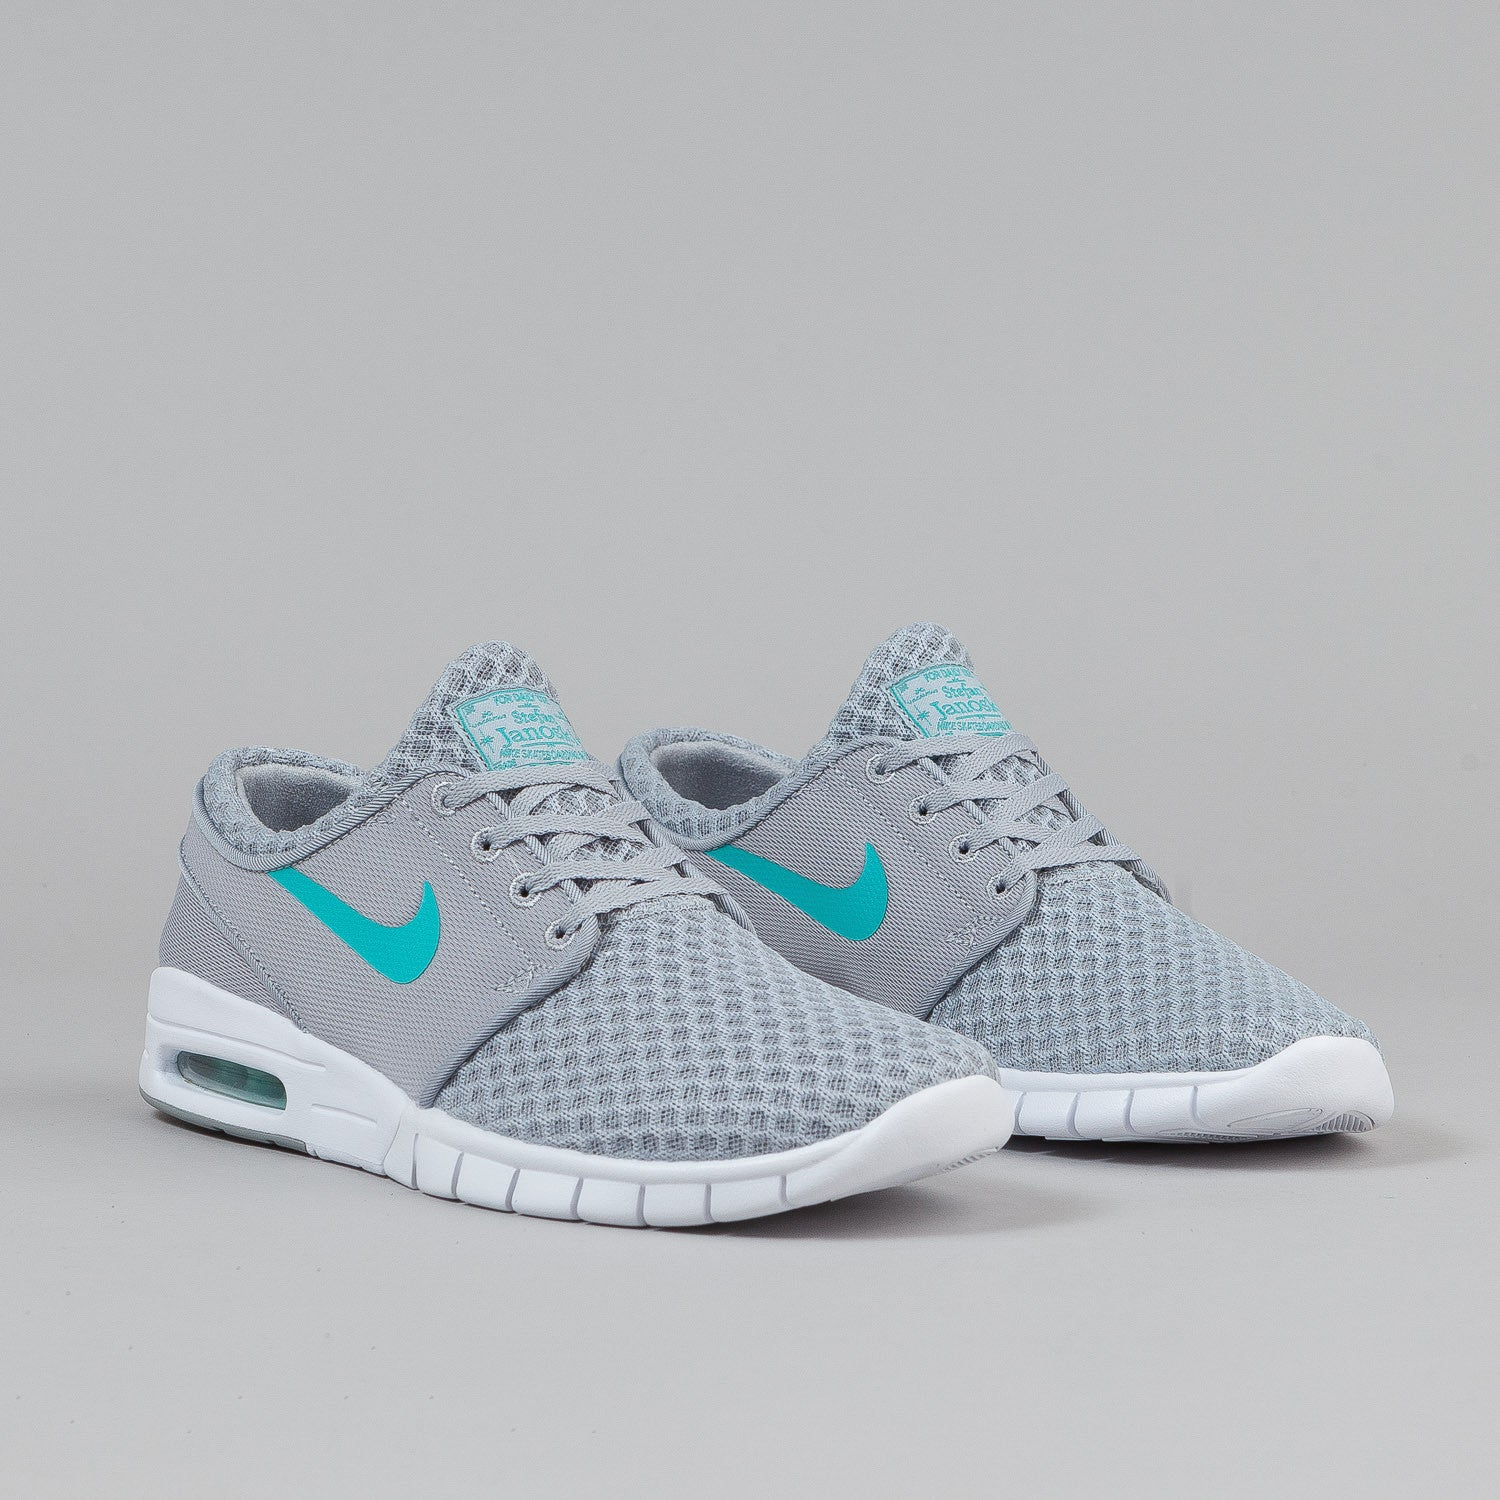 nike sb stefan janoski max shoes wolf grey light retro white flatspot. Black Bedroom Furniture Sets. Home Design Ideas